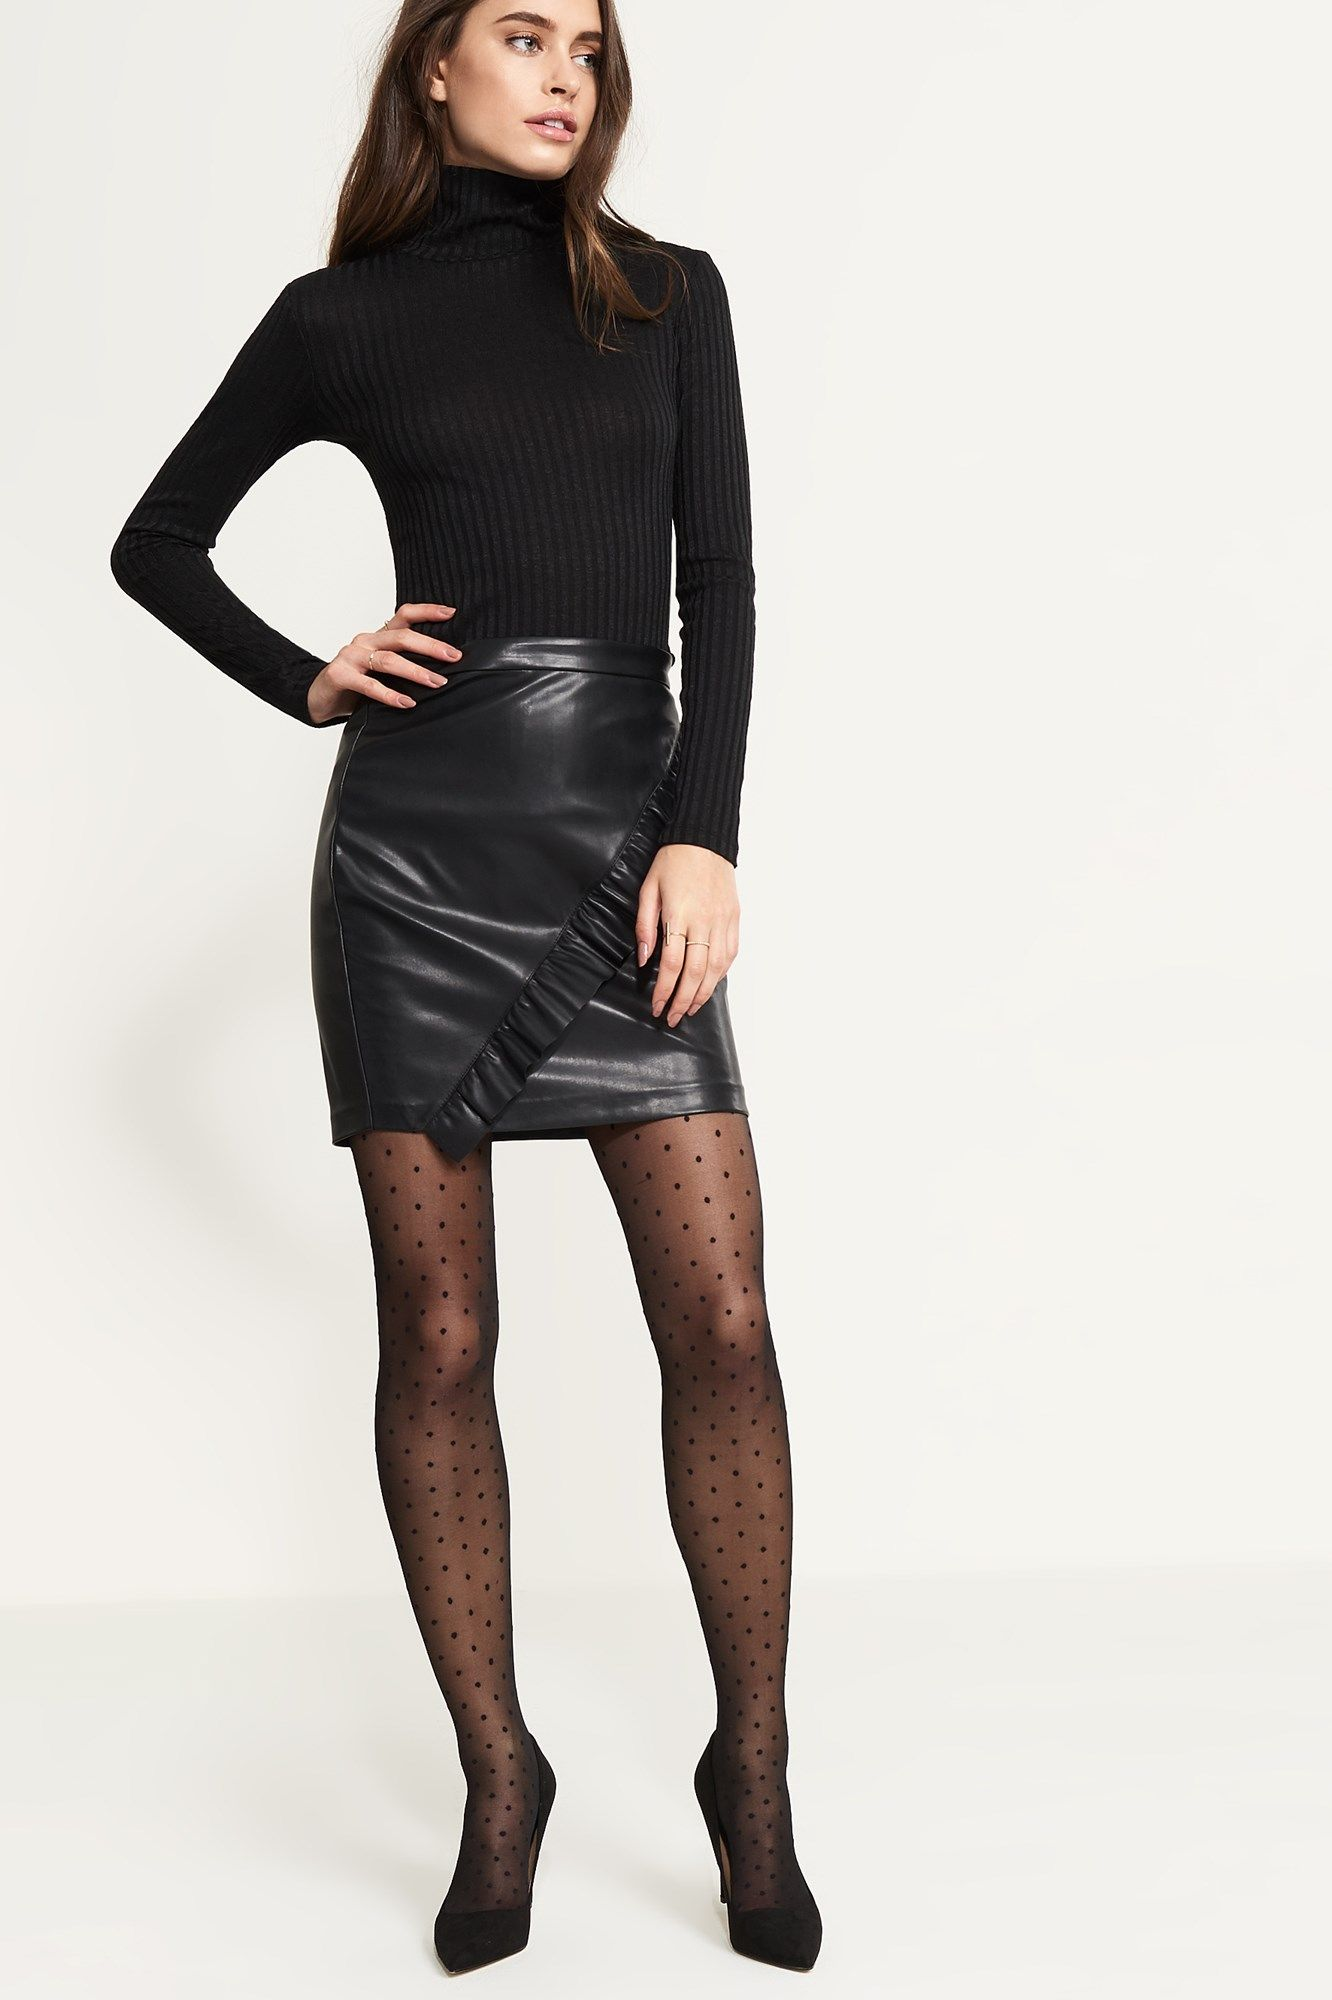 a170d3a32eca8 Dynamite Polka Dot Tights - Add a flirty touch to all your mini skirts and  dresses